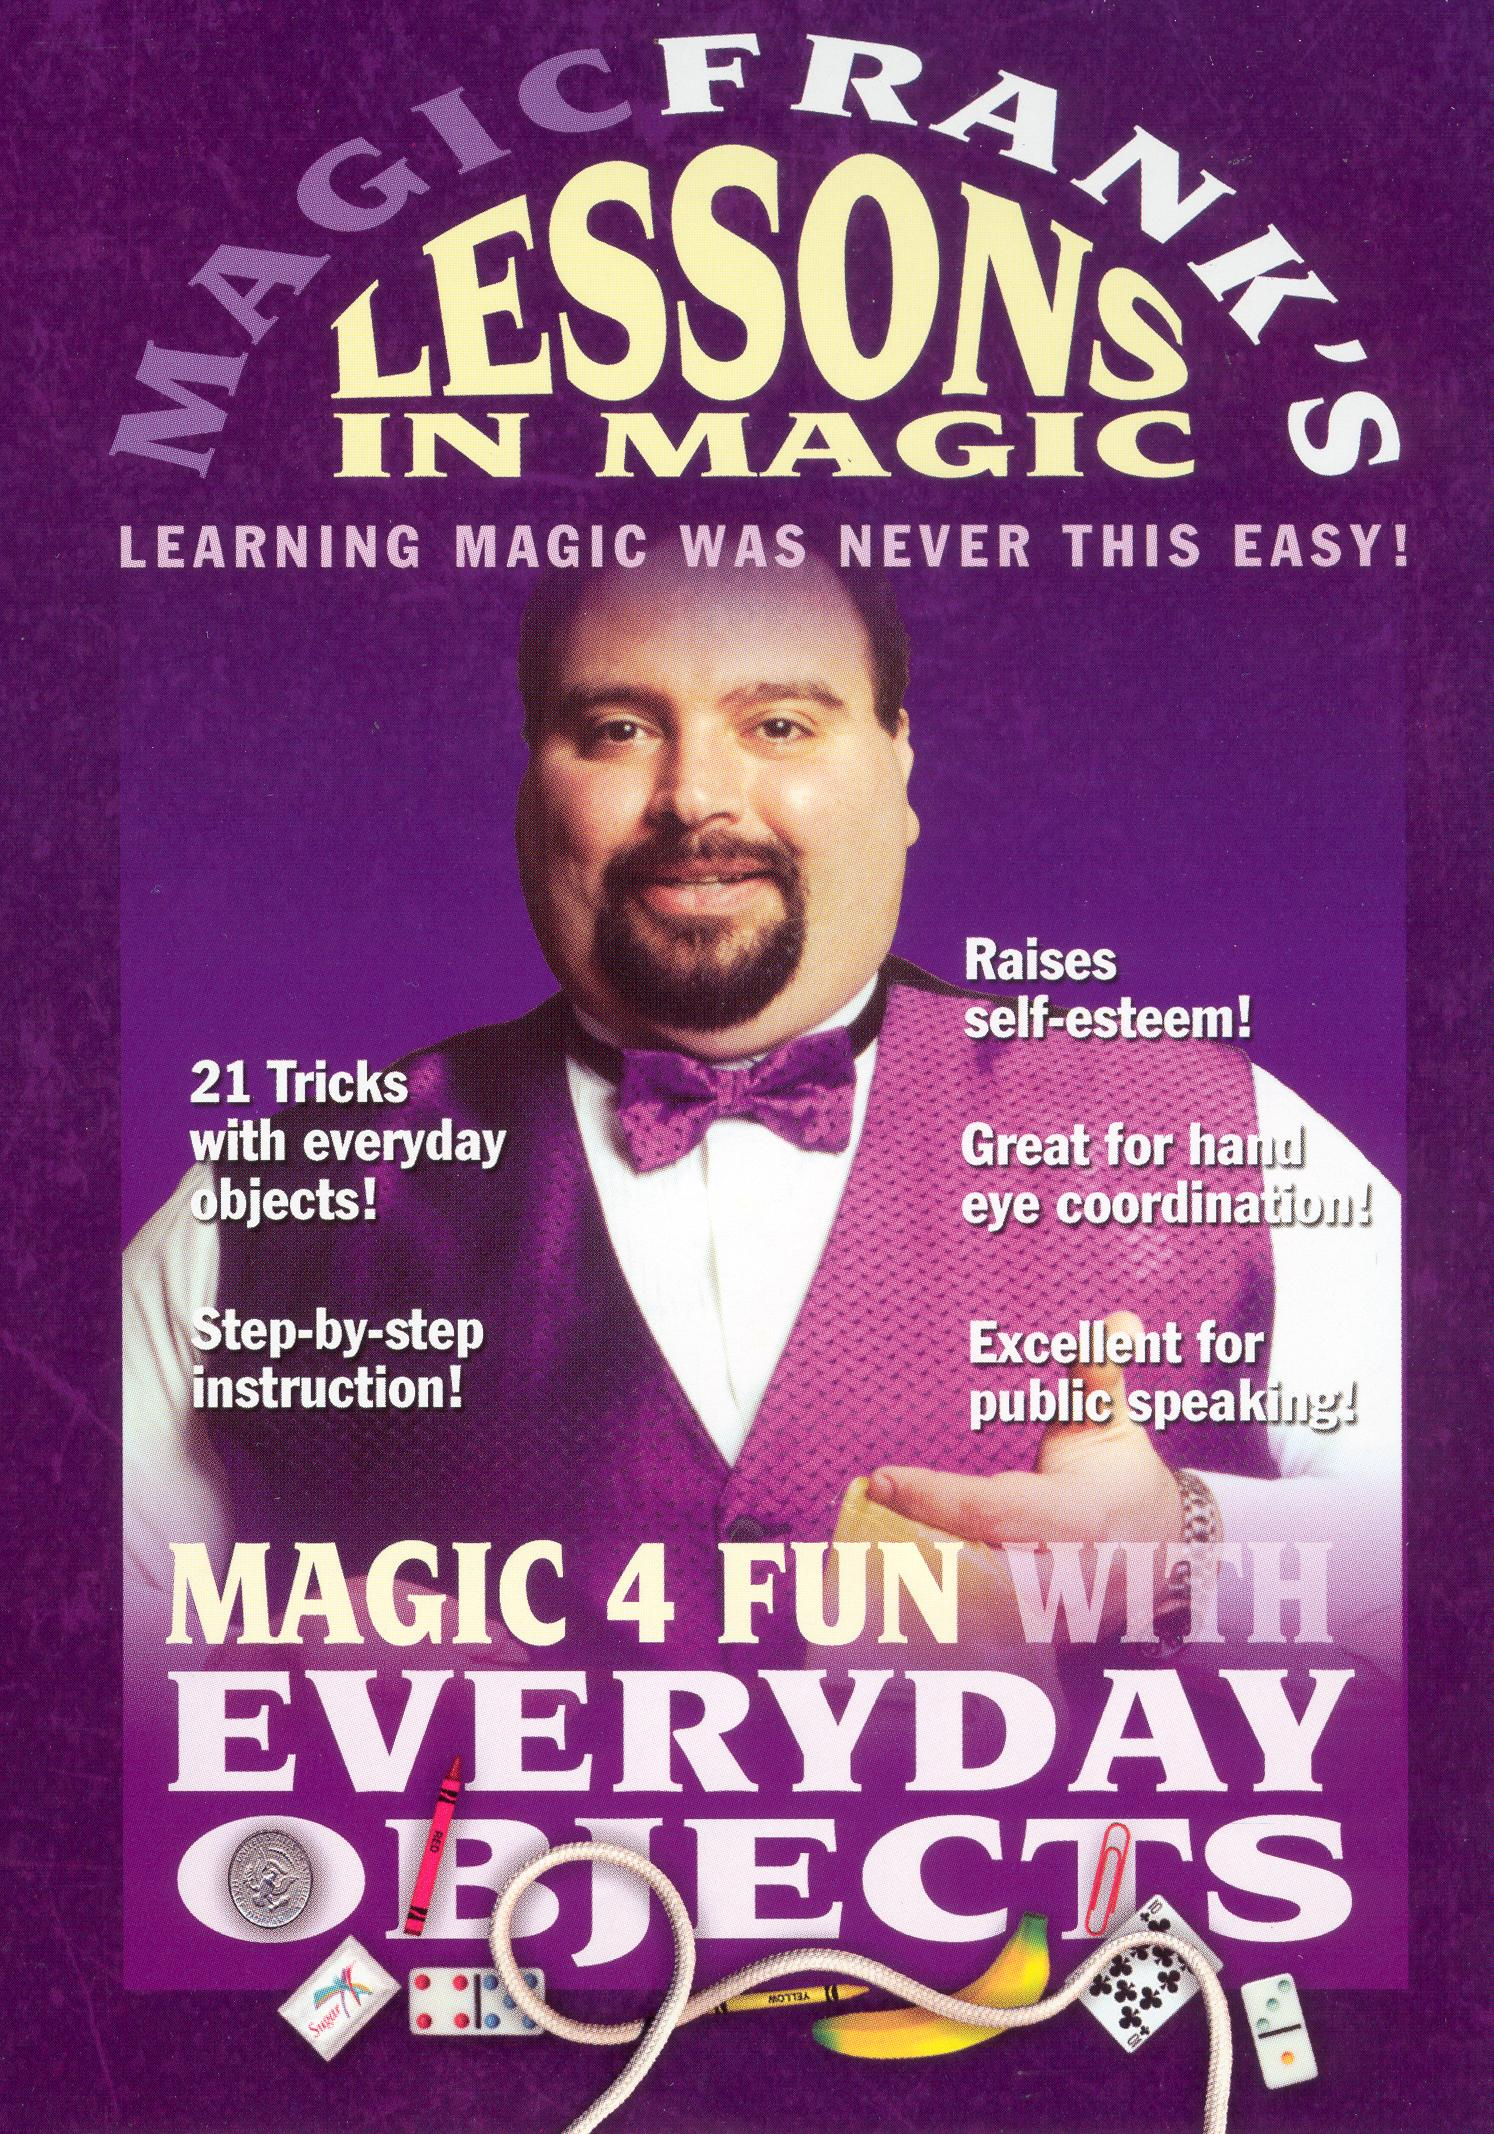 MAGICFRANK's Lessons in Magic: Magic 4 Fun With Everyday Objects